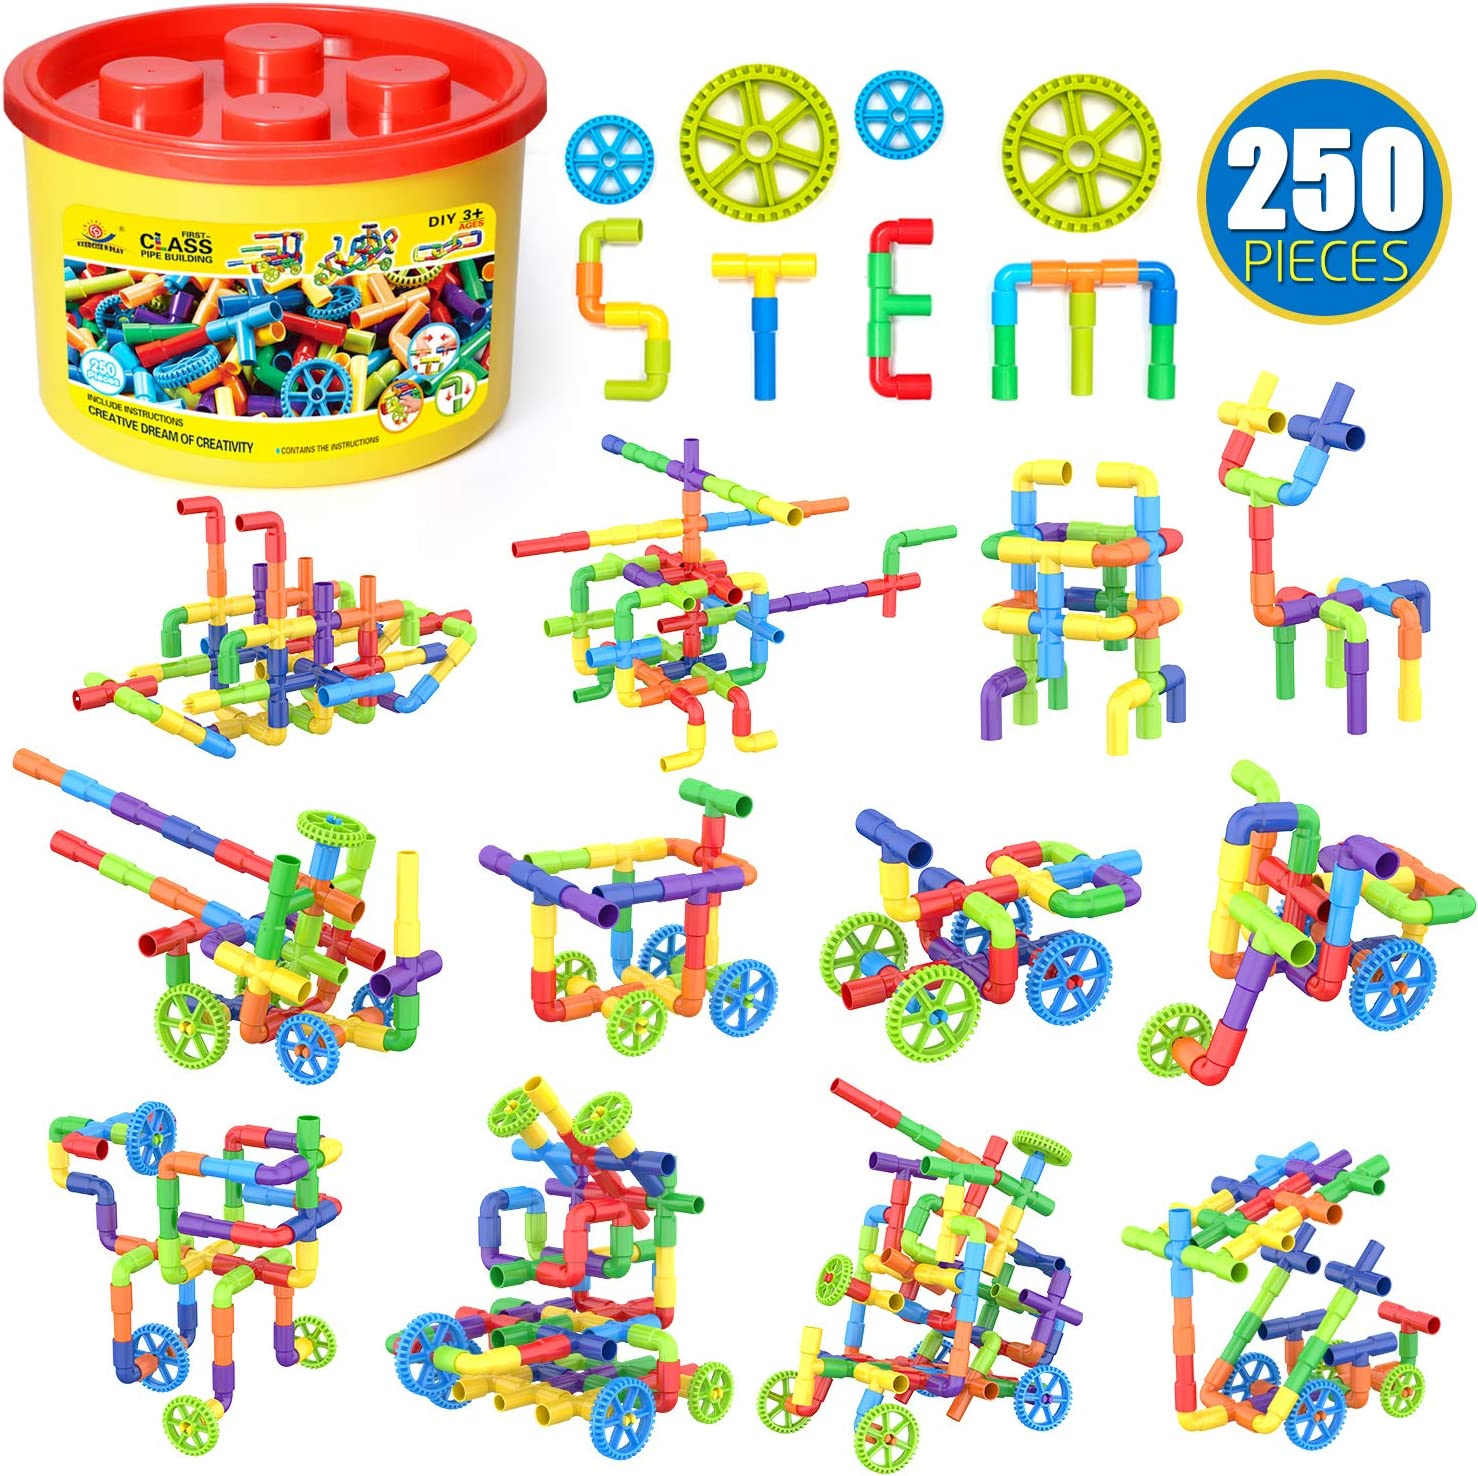 WishaLife 250 Pieces Tube Toys, Sensory Toys, Toy Pipe, Tube Locks Set, Tubular Spout Construction Building Blocks Set, Educational STEM Building Learning Toys with Wheels for Kids Boys Girls